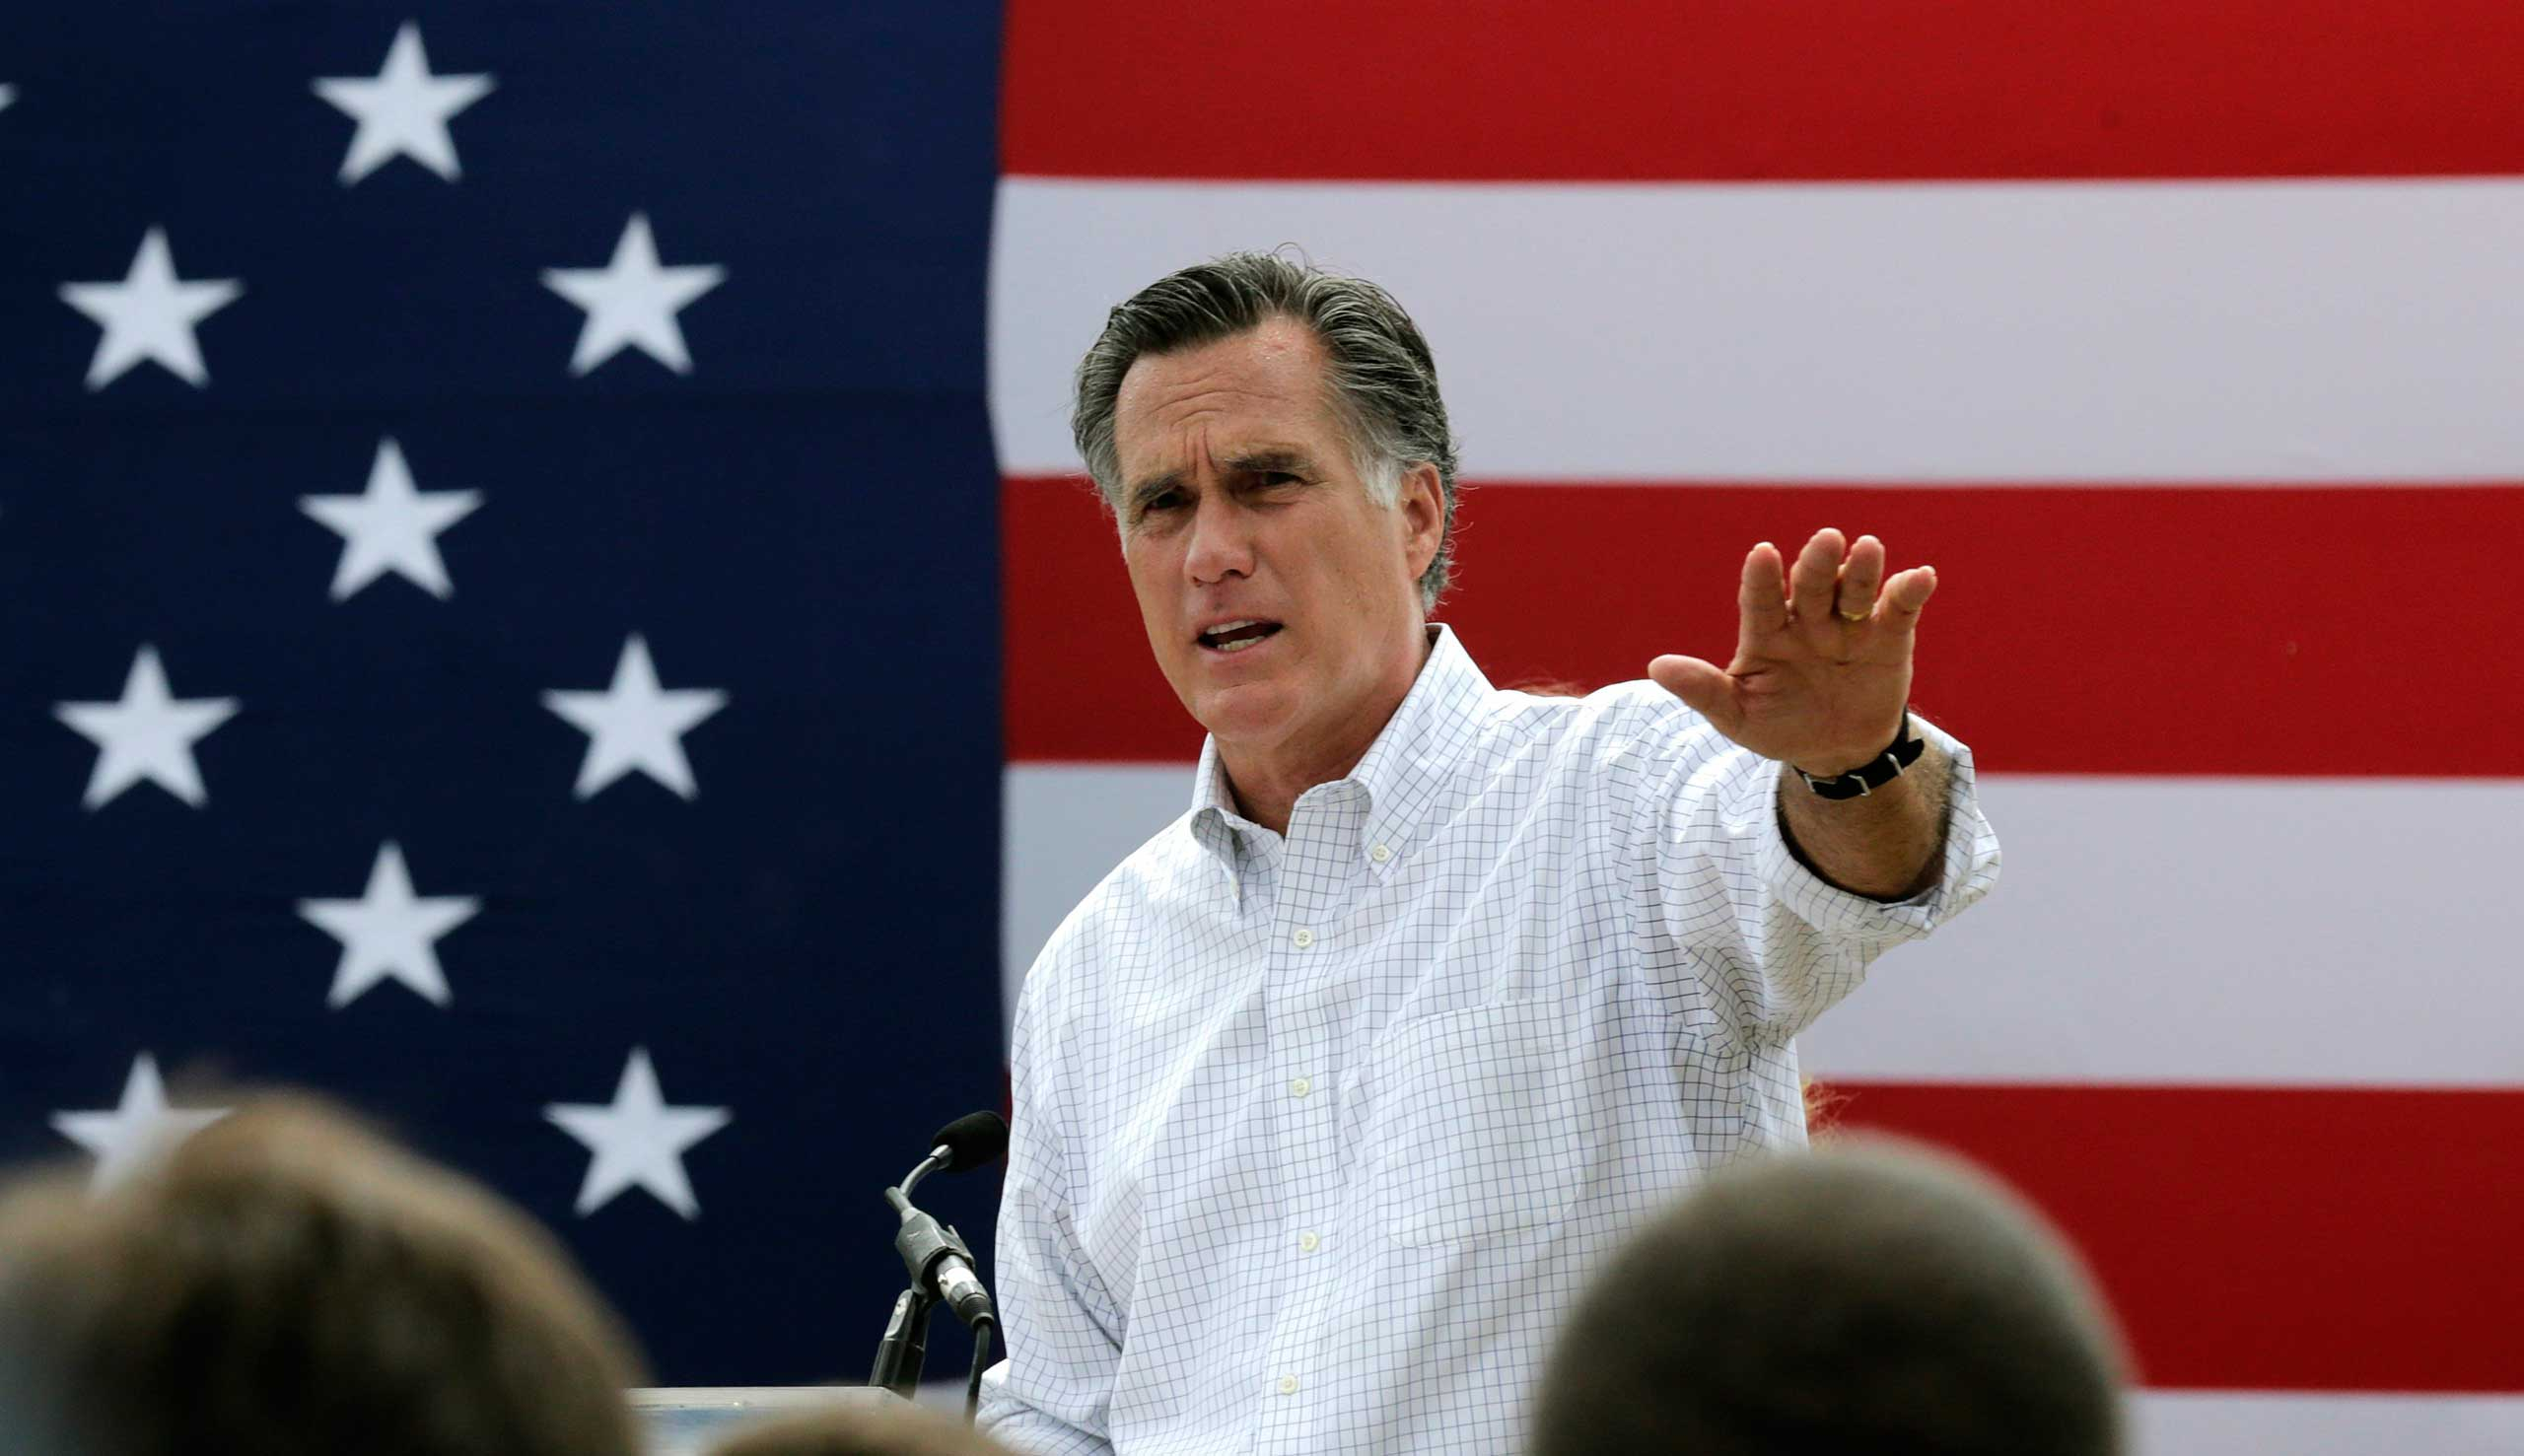 Mitt Romney, the former Republican presidential nominee, addresses a crowd of supporters while introducing New Hampshire Senate candidate Scott Brown at a farm in Stratham, N.H. on July 2, 2014.